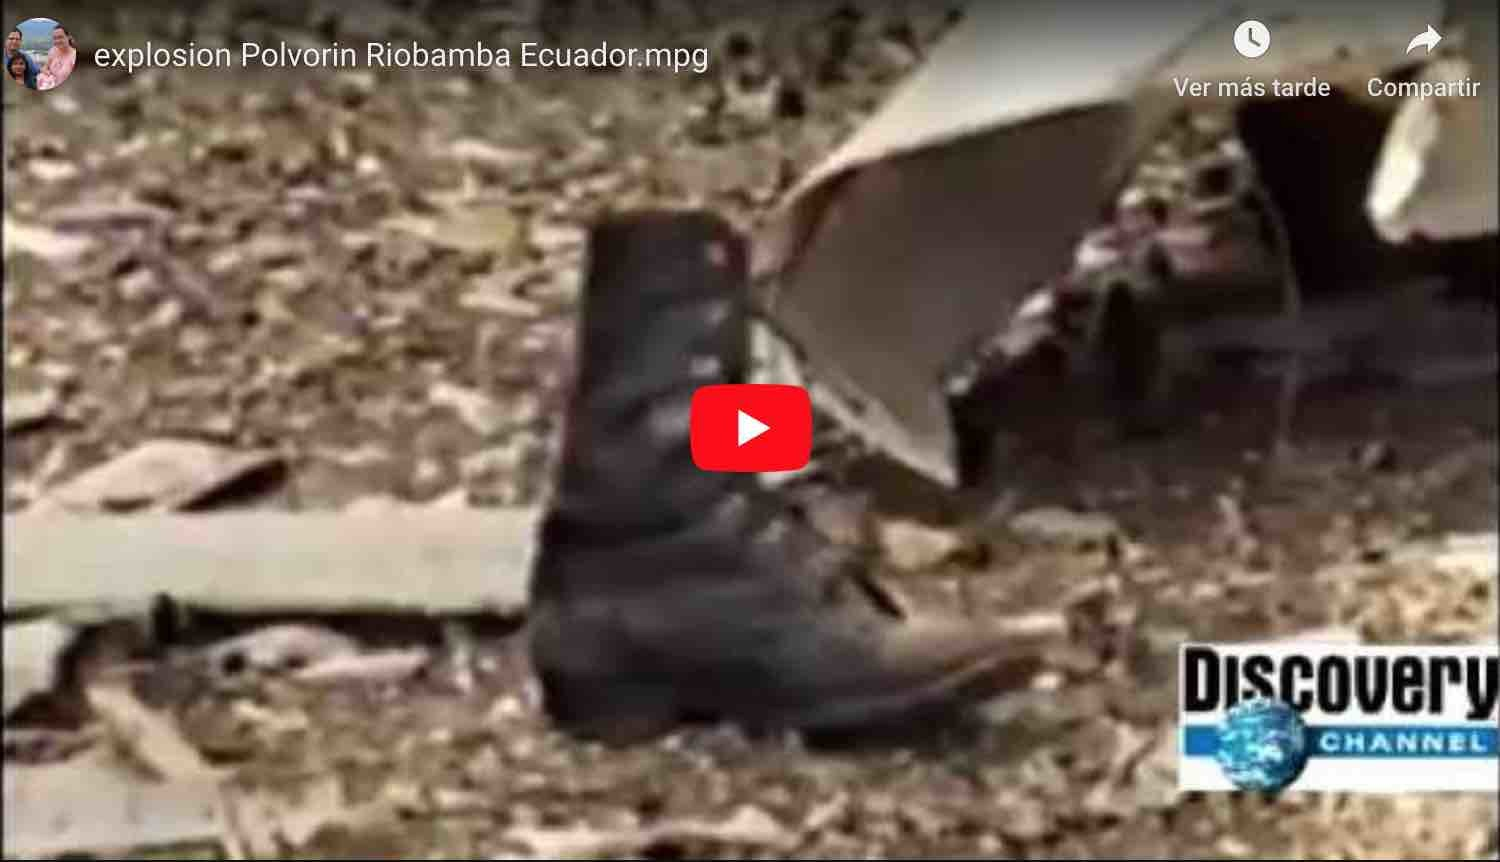 Photo of 🔴 VIDEO | Explosion Polvorín Riobamba – Discovery Chanel